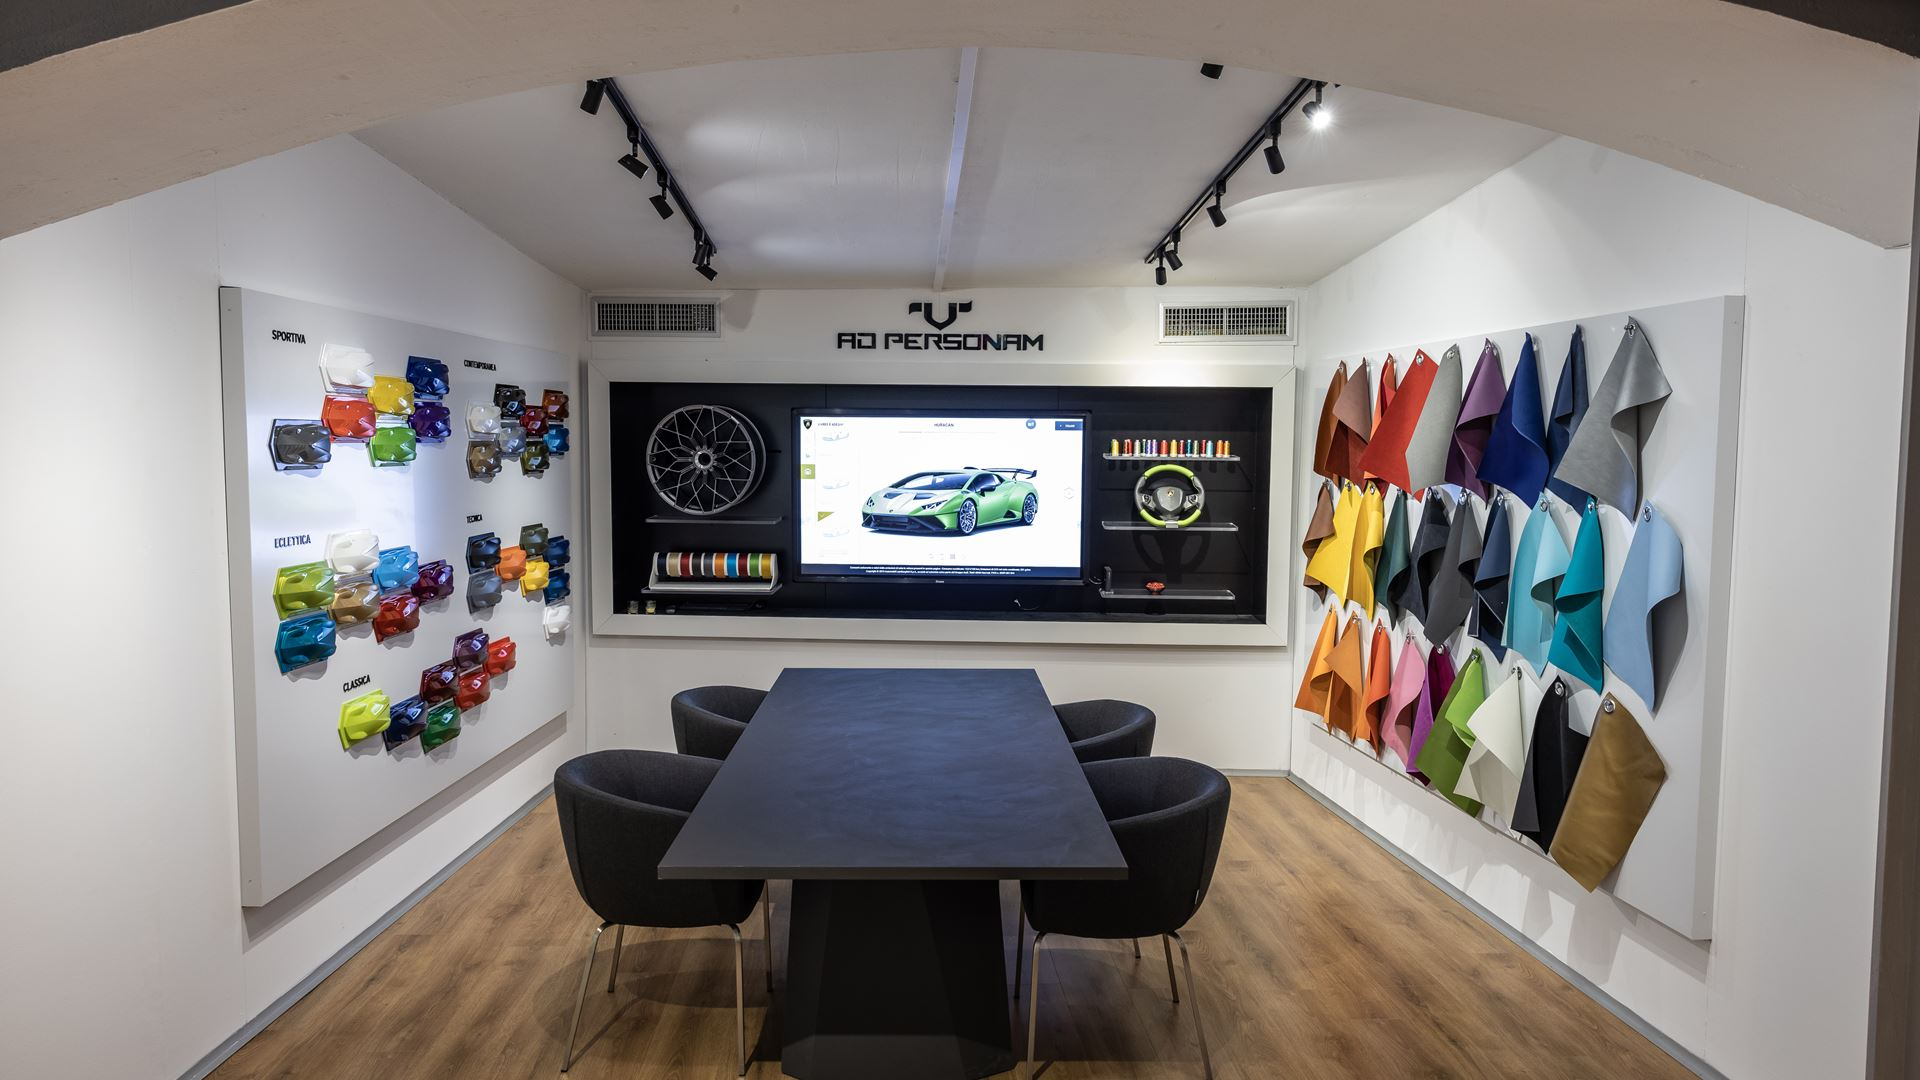 Lamborghini Lounge in Porto Cervo: exclusivity, lifestyle and product innovations, until September - Image 6